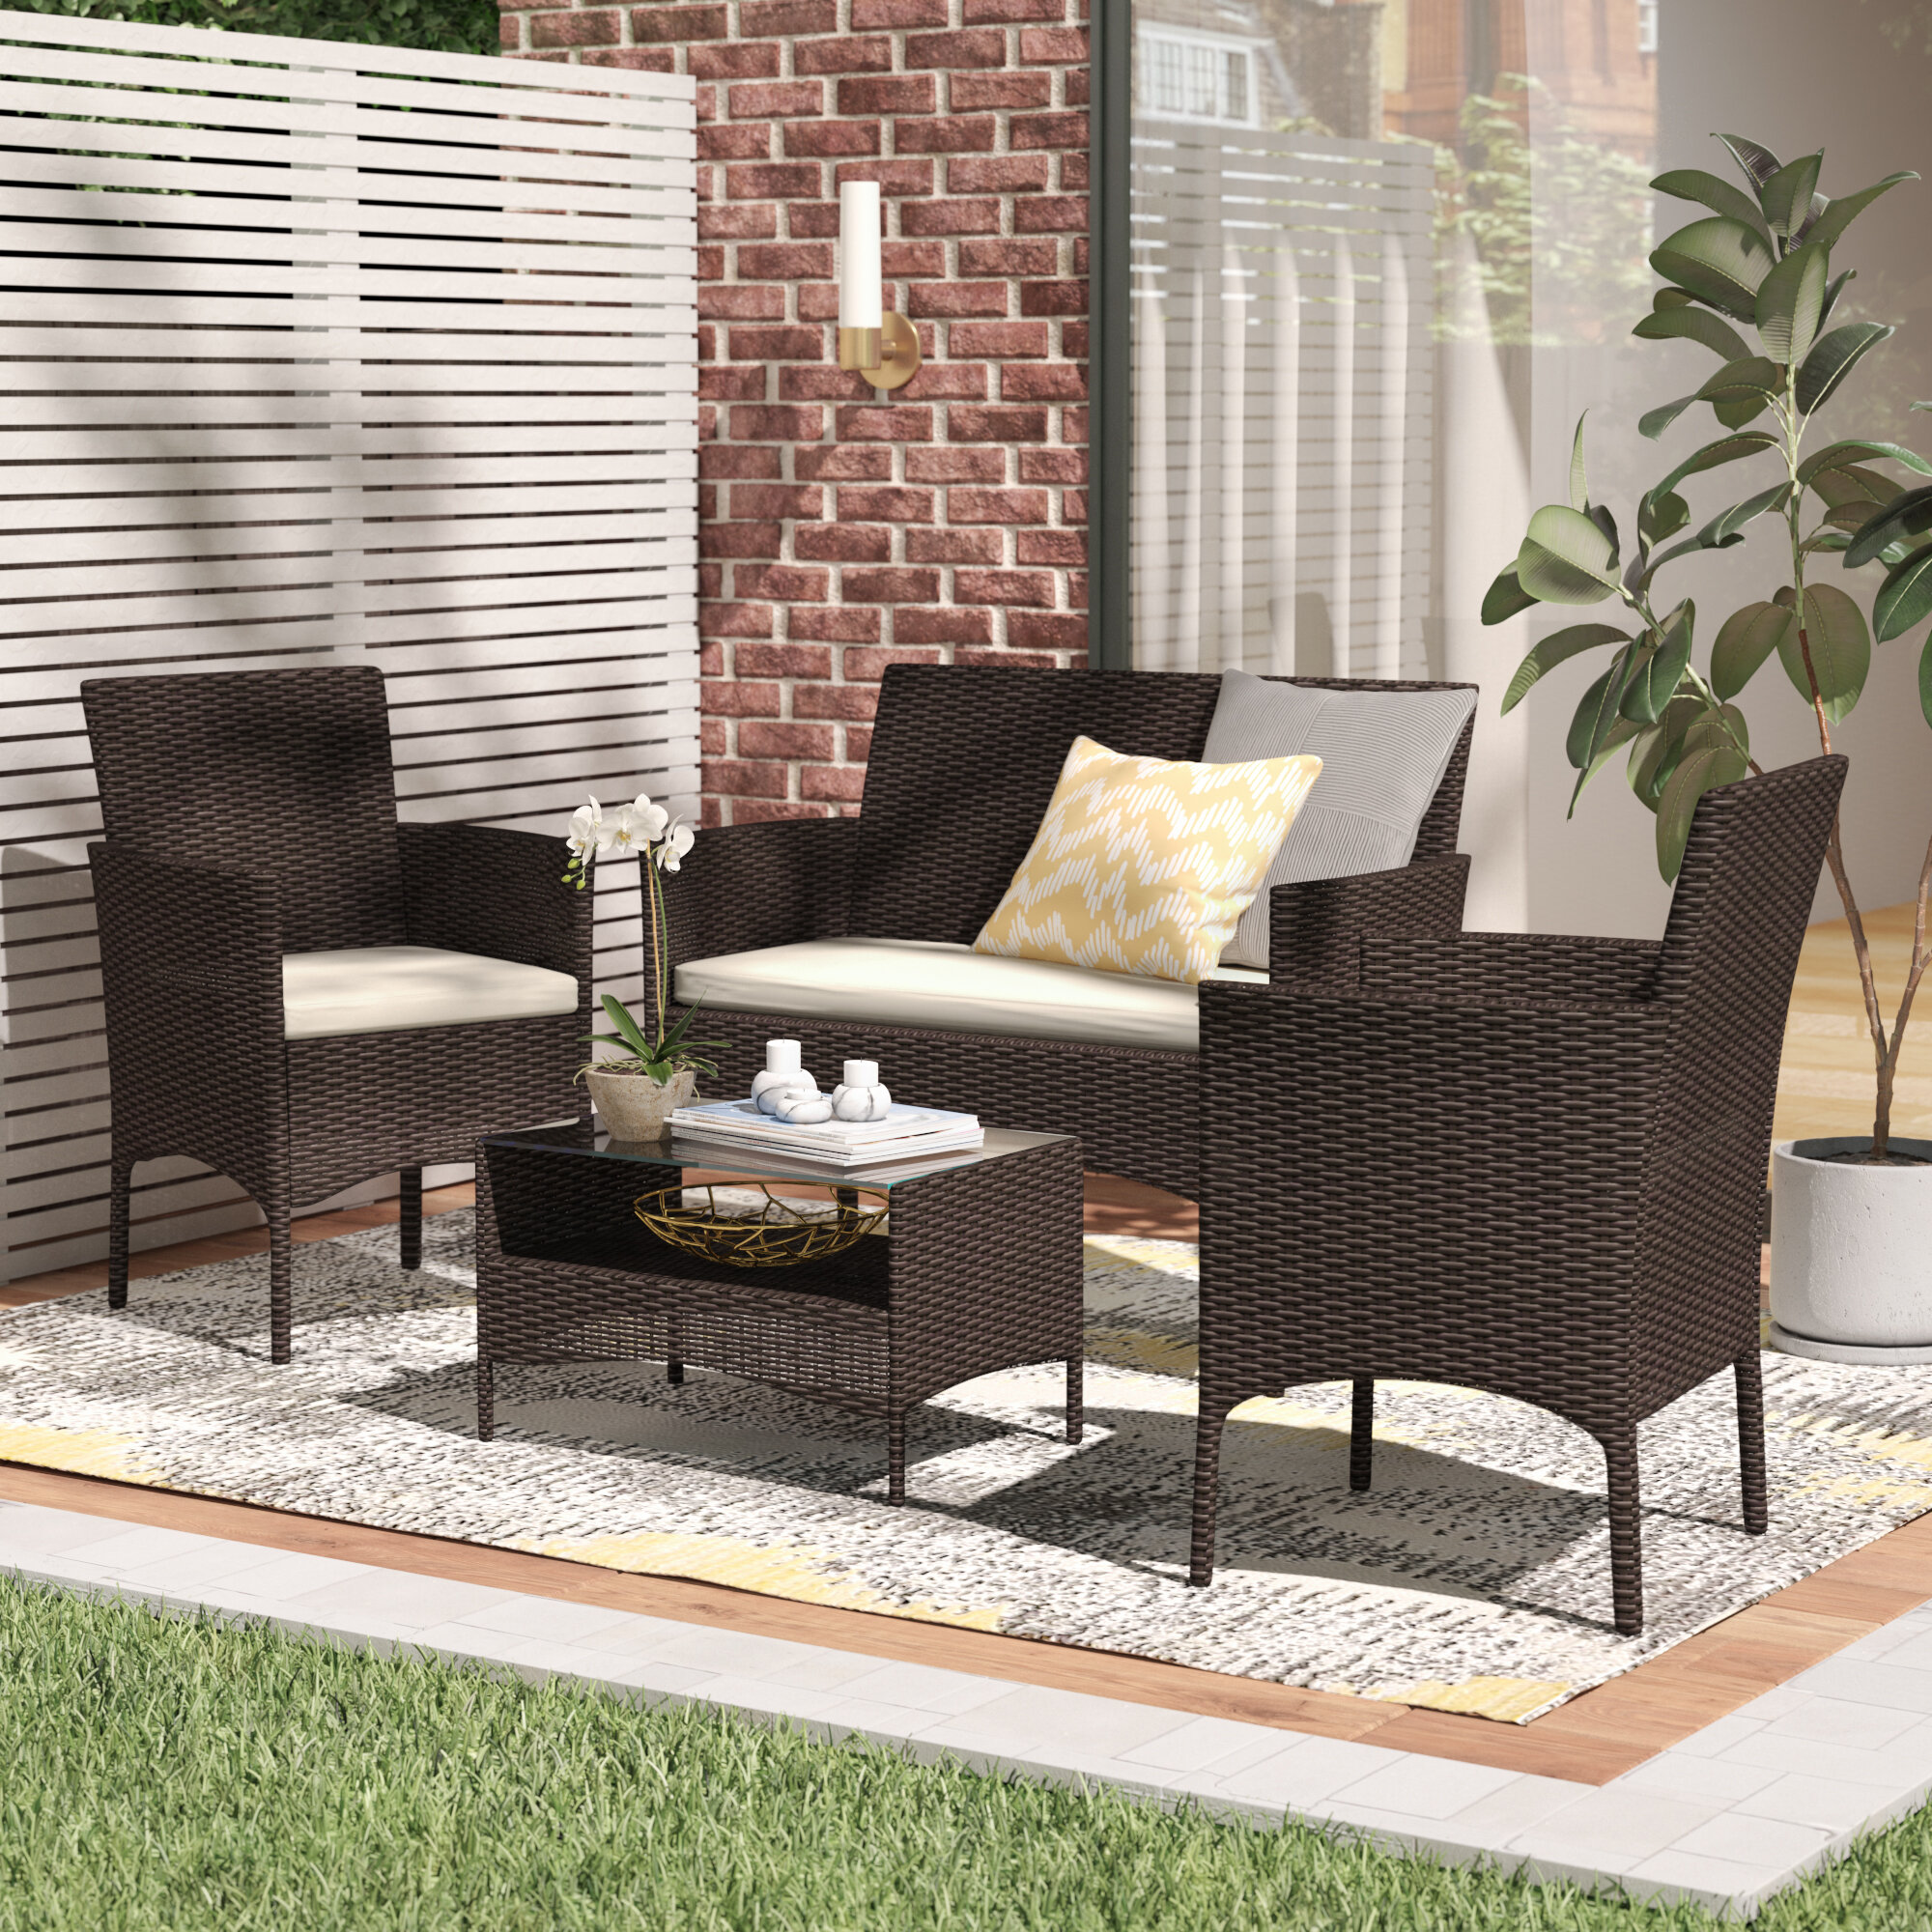 Delicieux Woodland Park 4 Piece Rattan Sofa Seating Group With Cushions